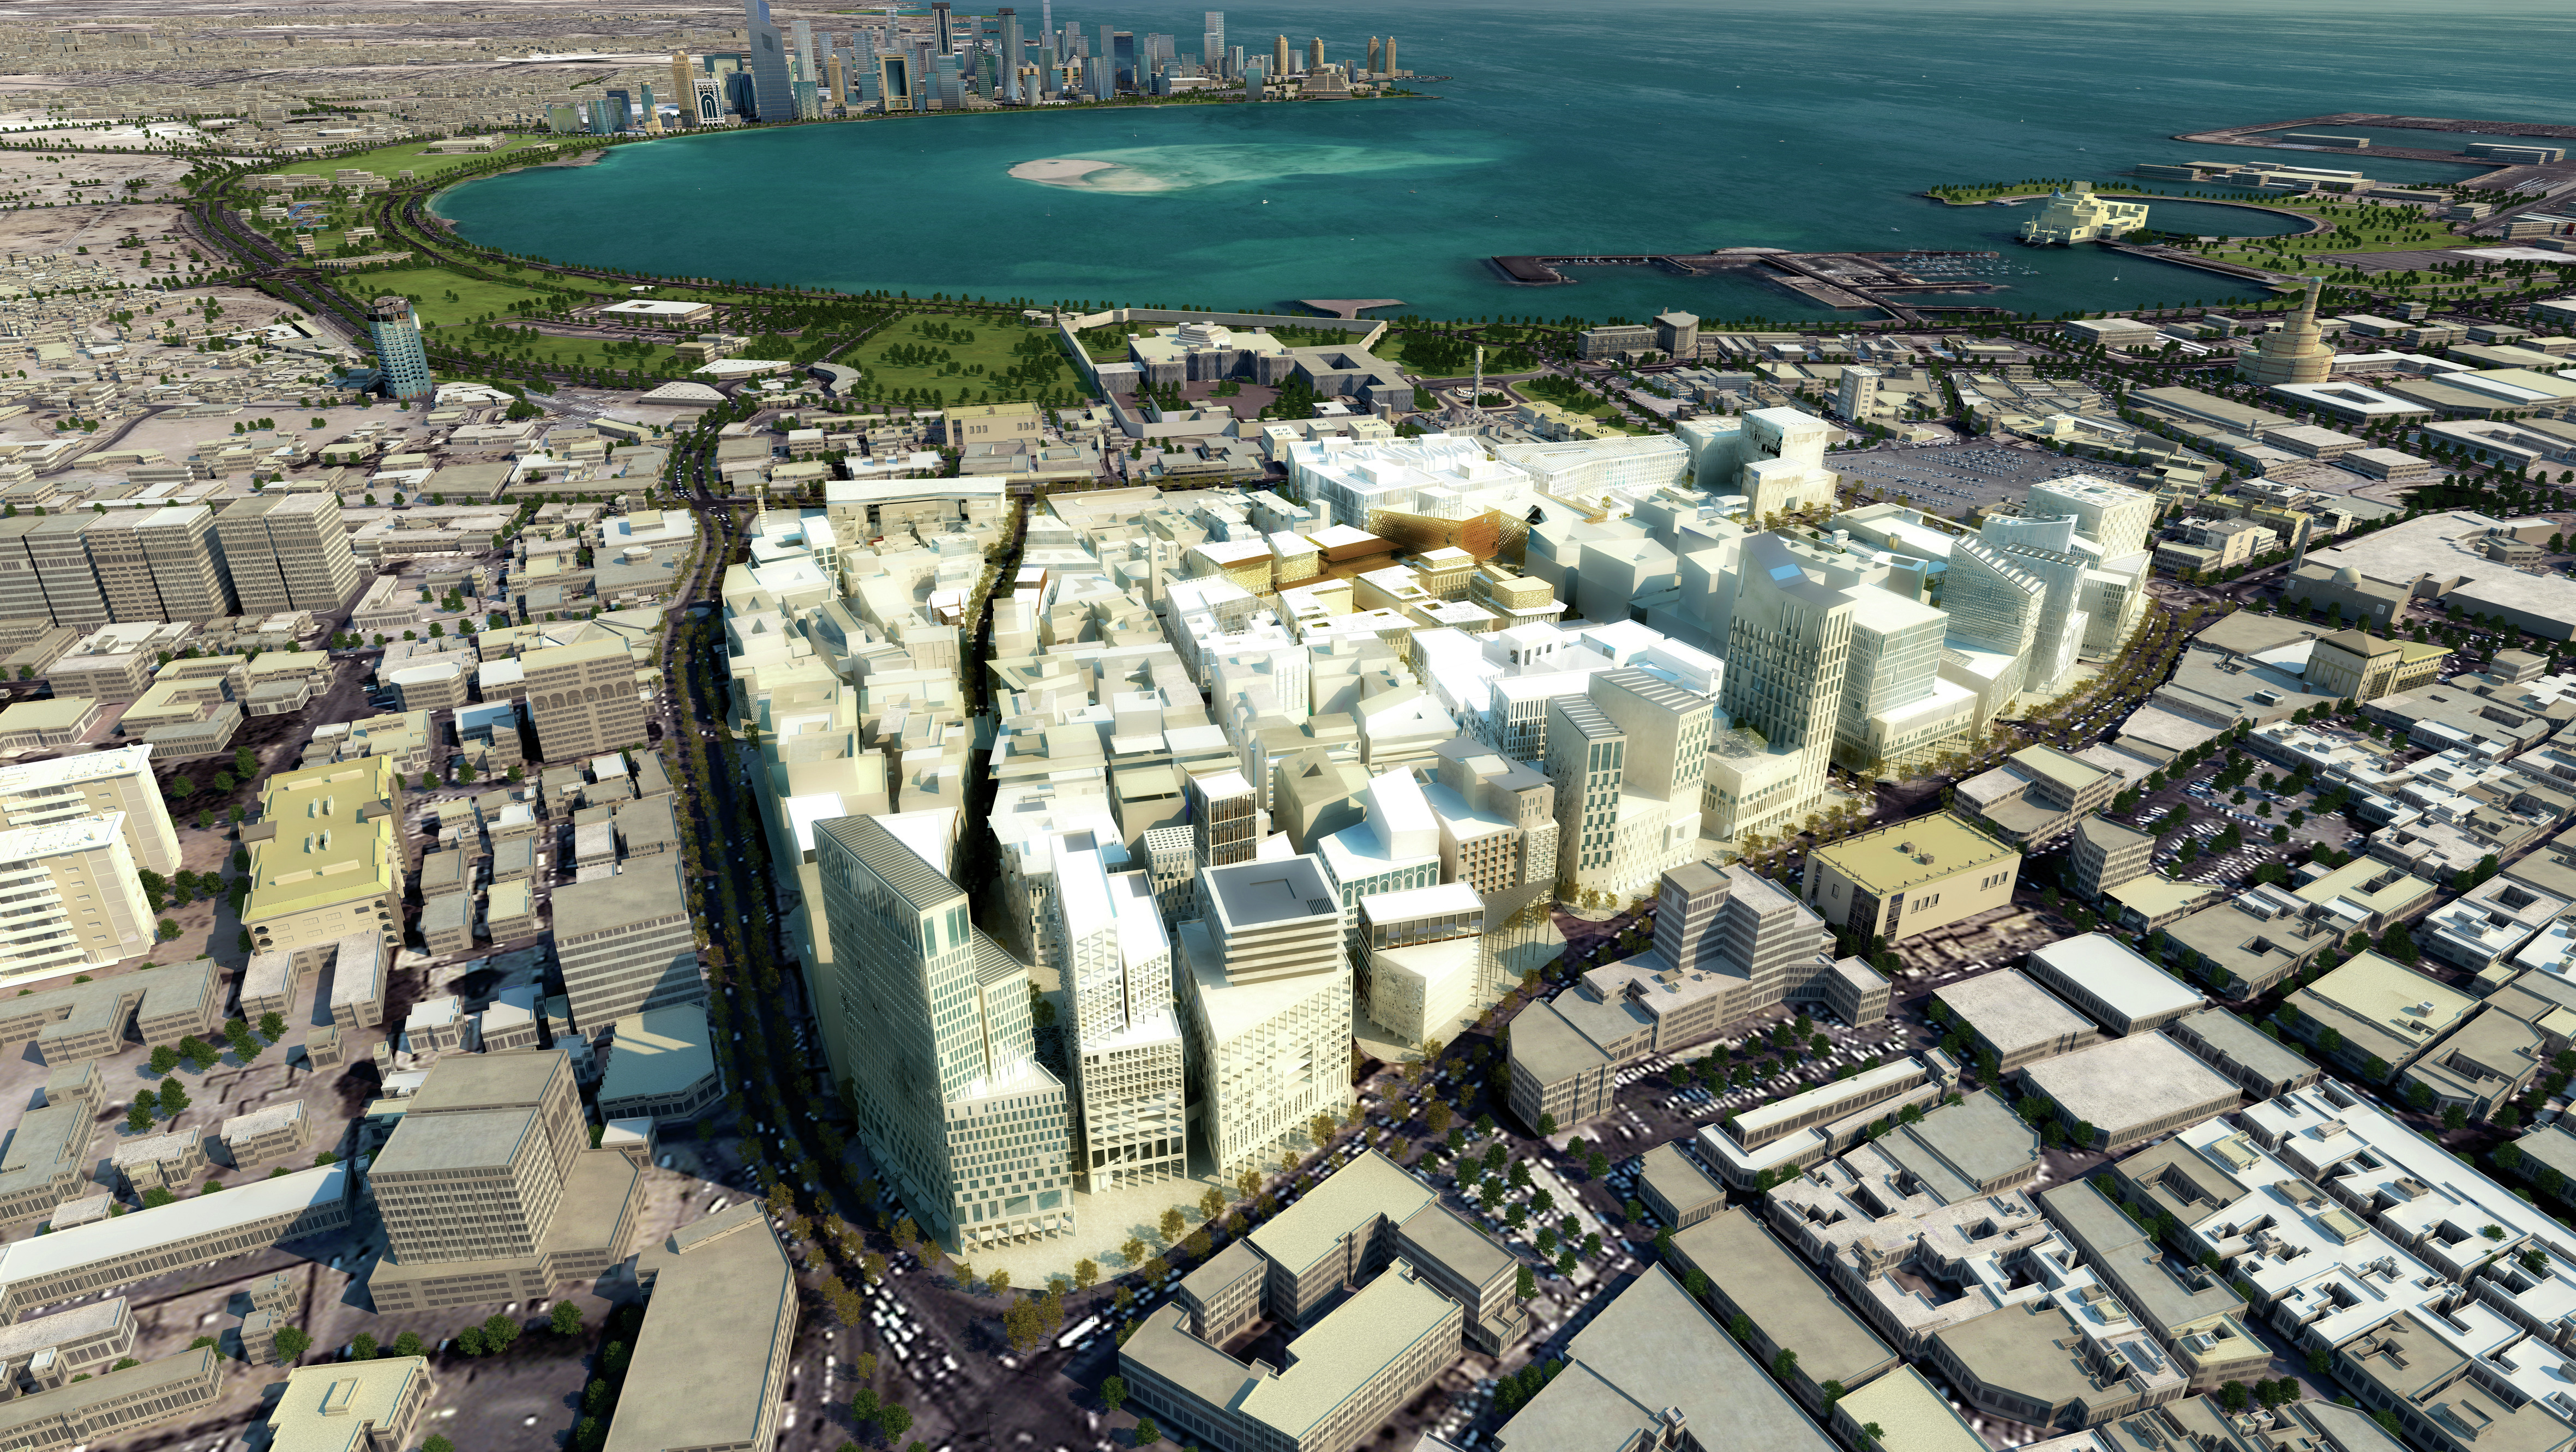 Msheireb Propertiesinvests in Qatar youth